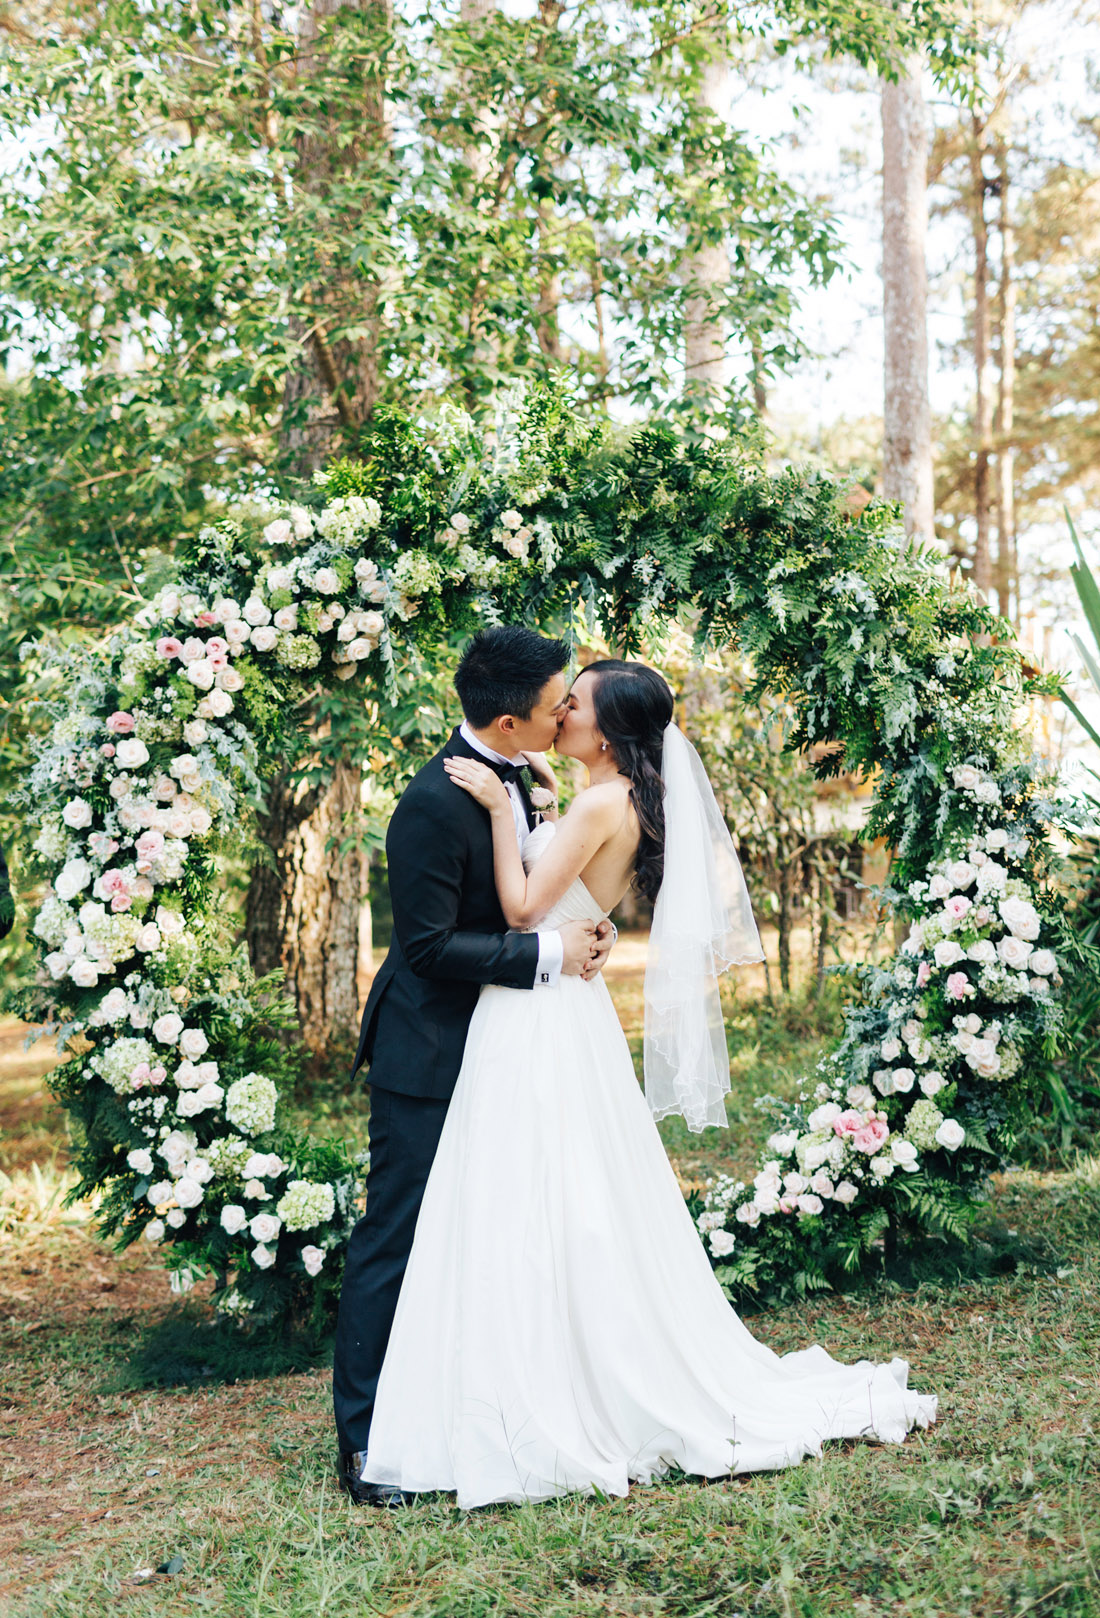 Tam-Patrick-dalat-wedding-destination 41